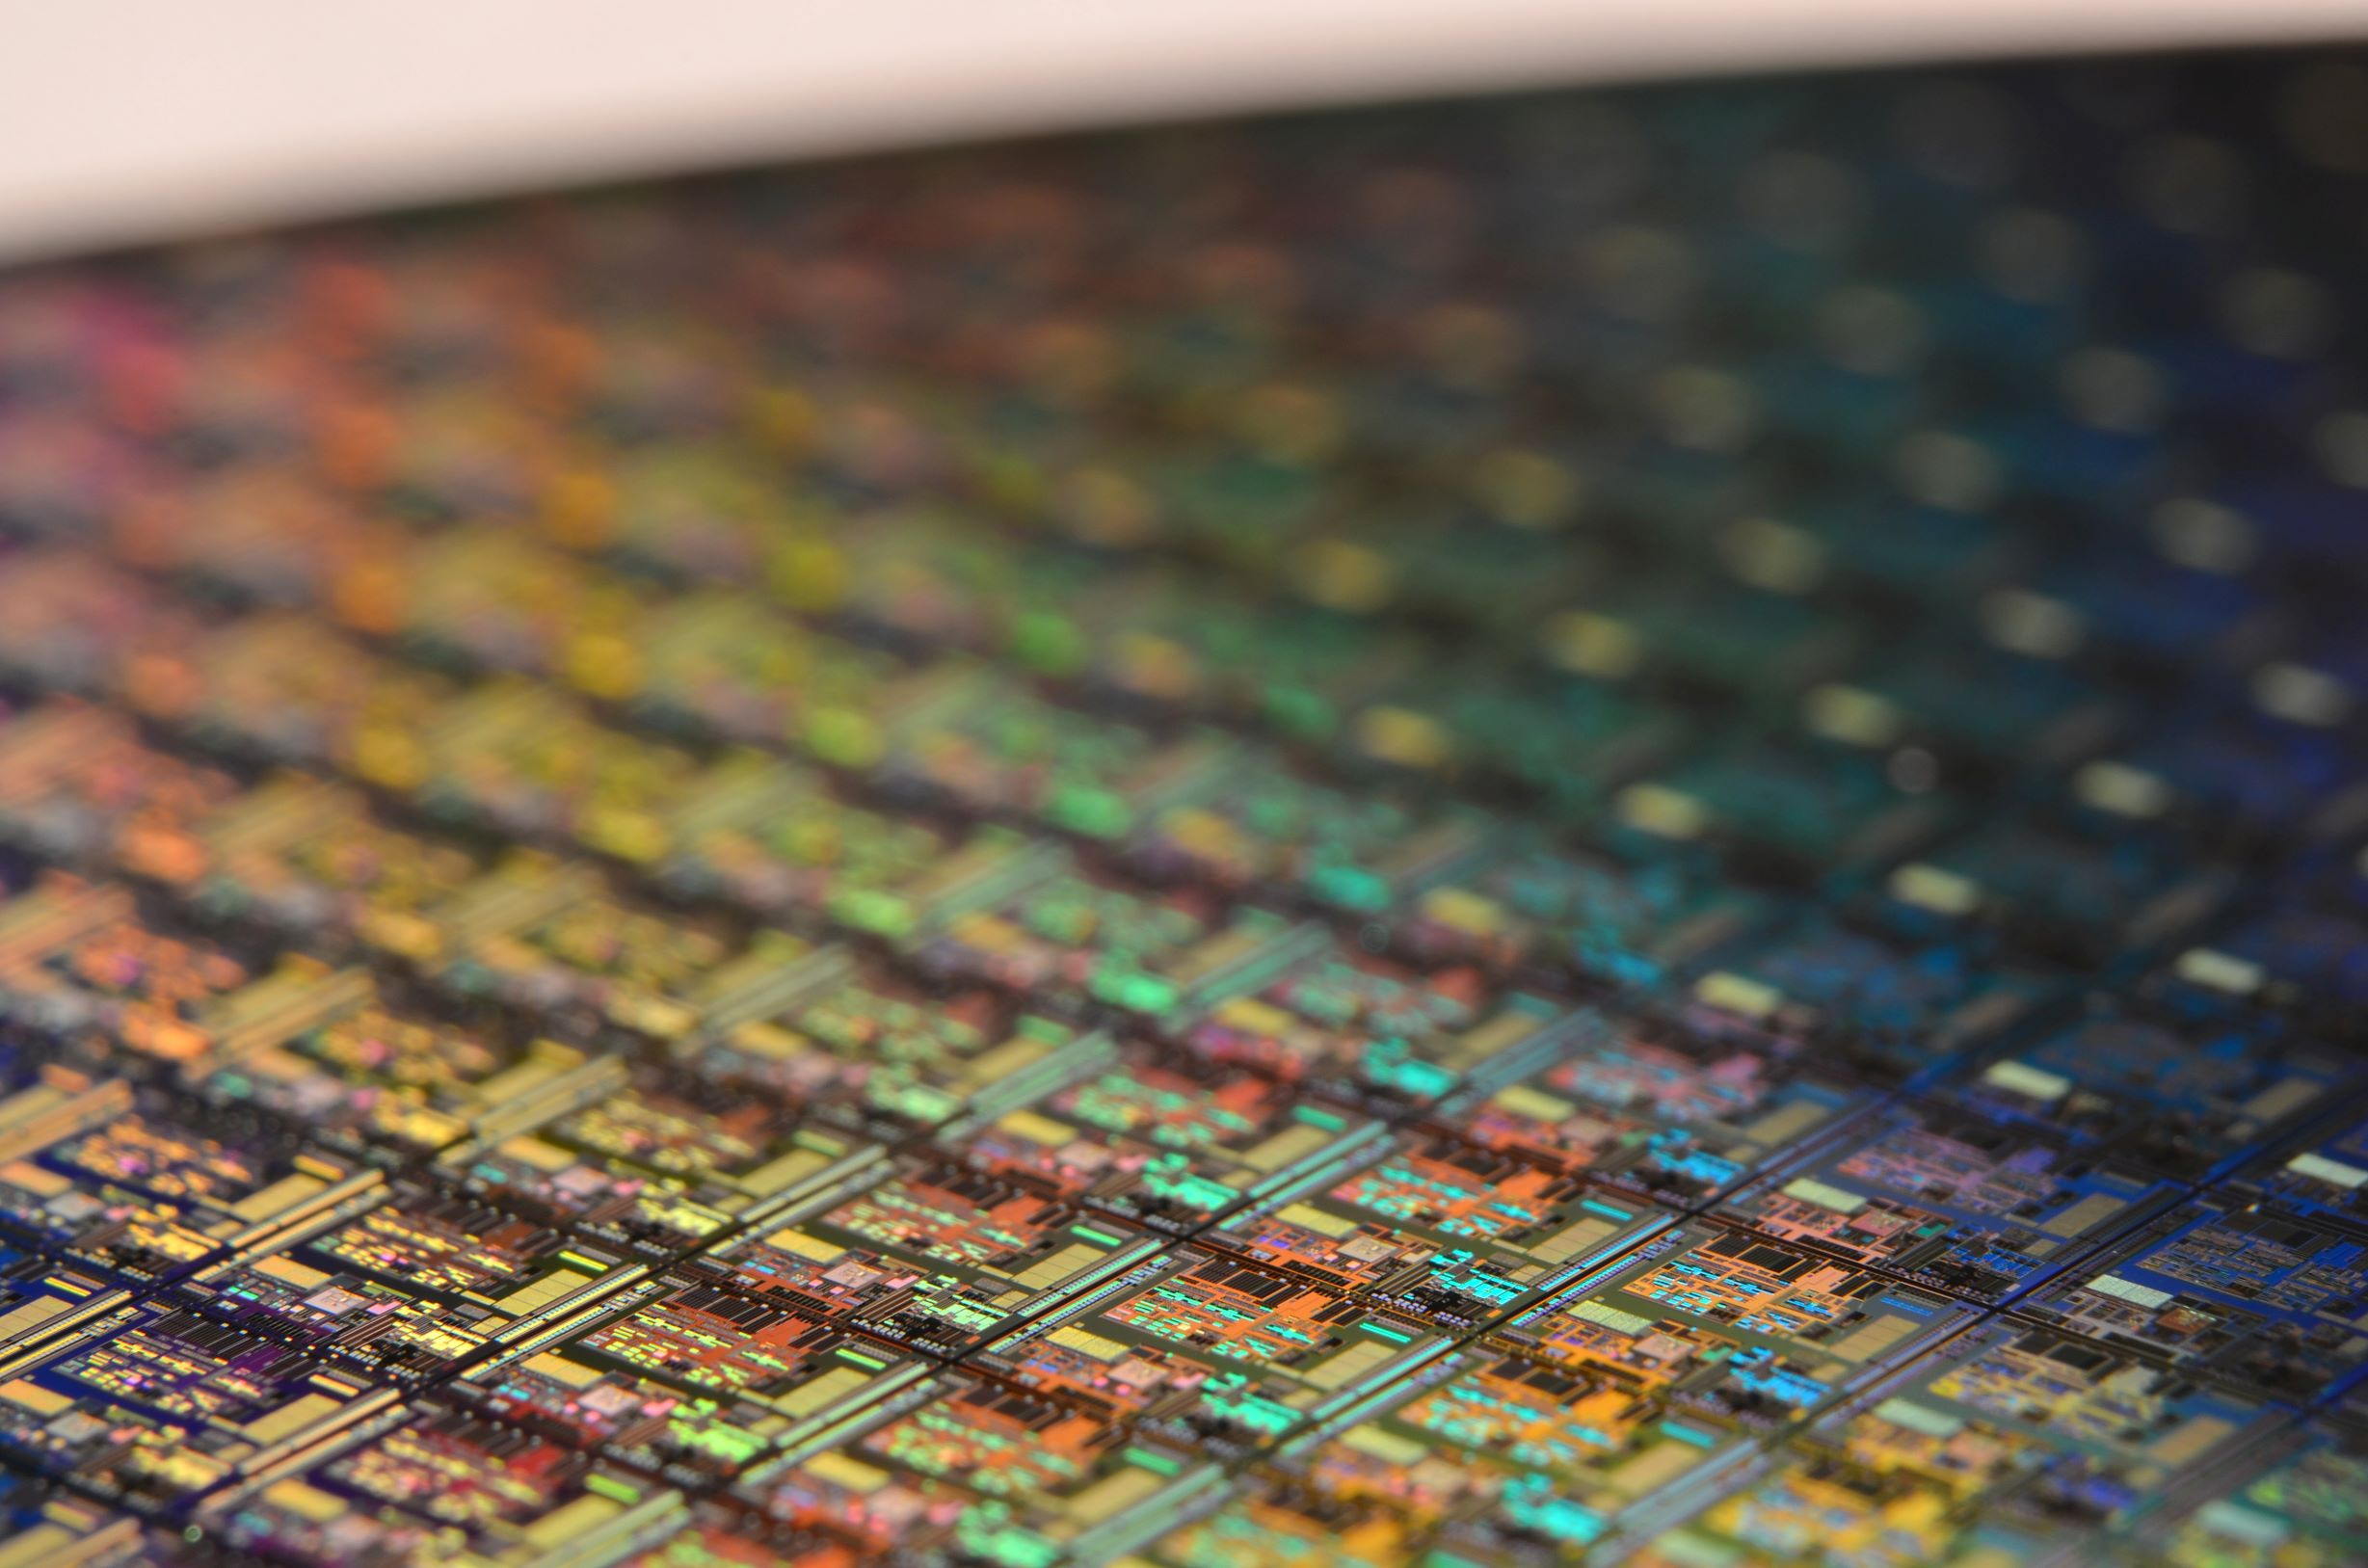 TSMC's 7nm+ EUV is in production, improves performance by 10%